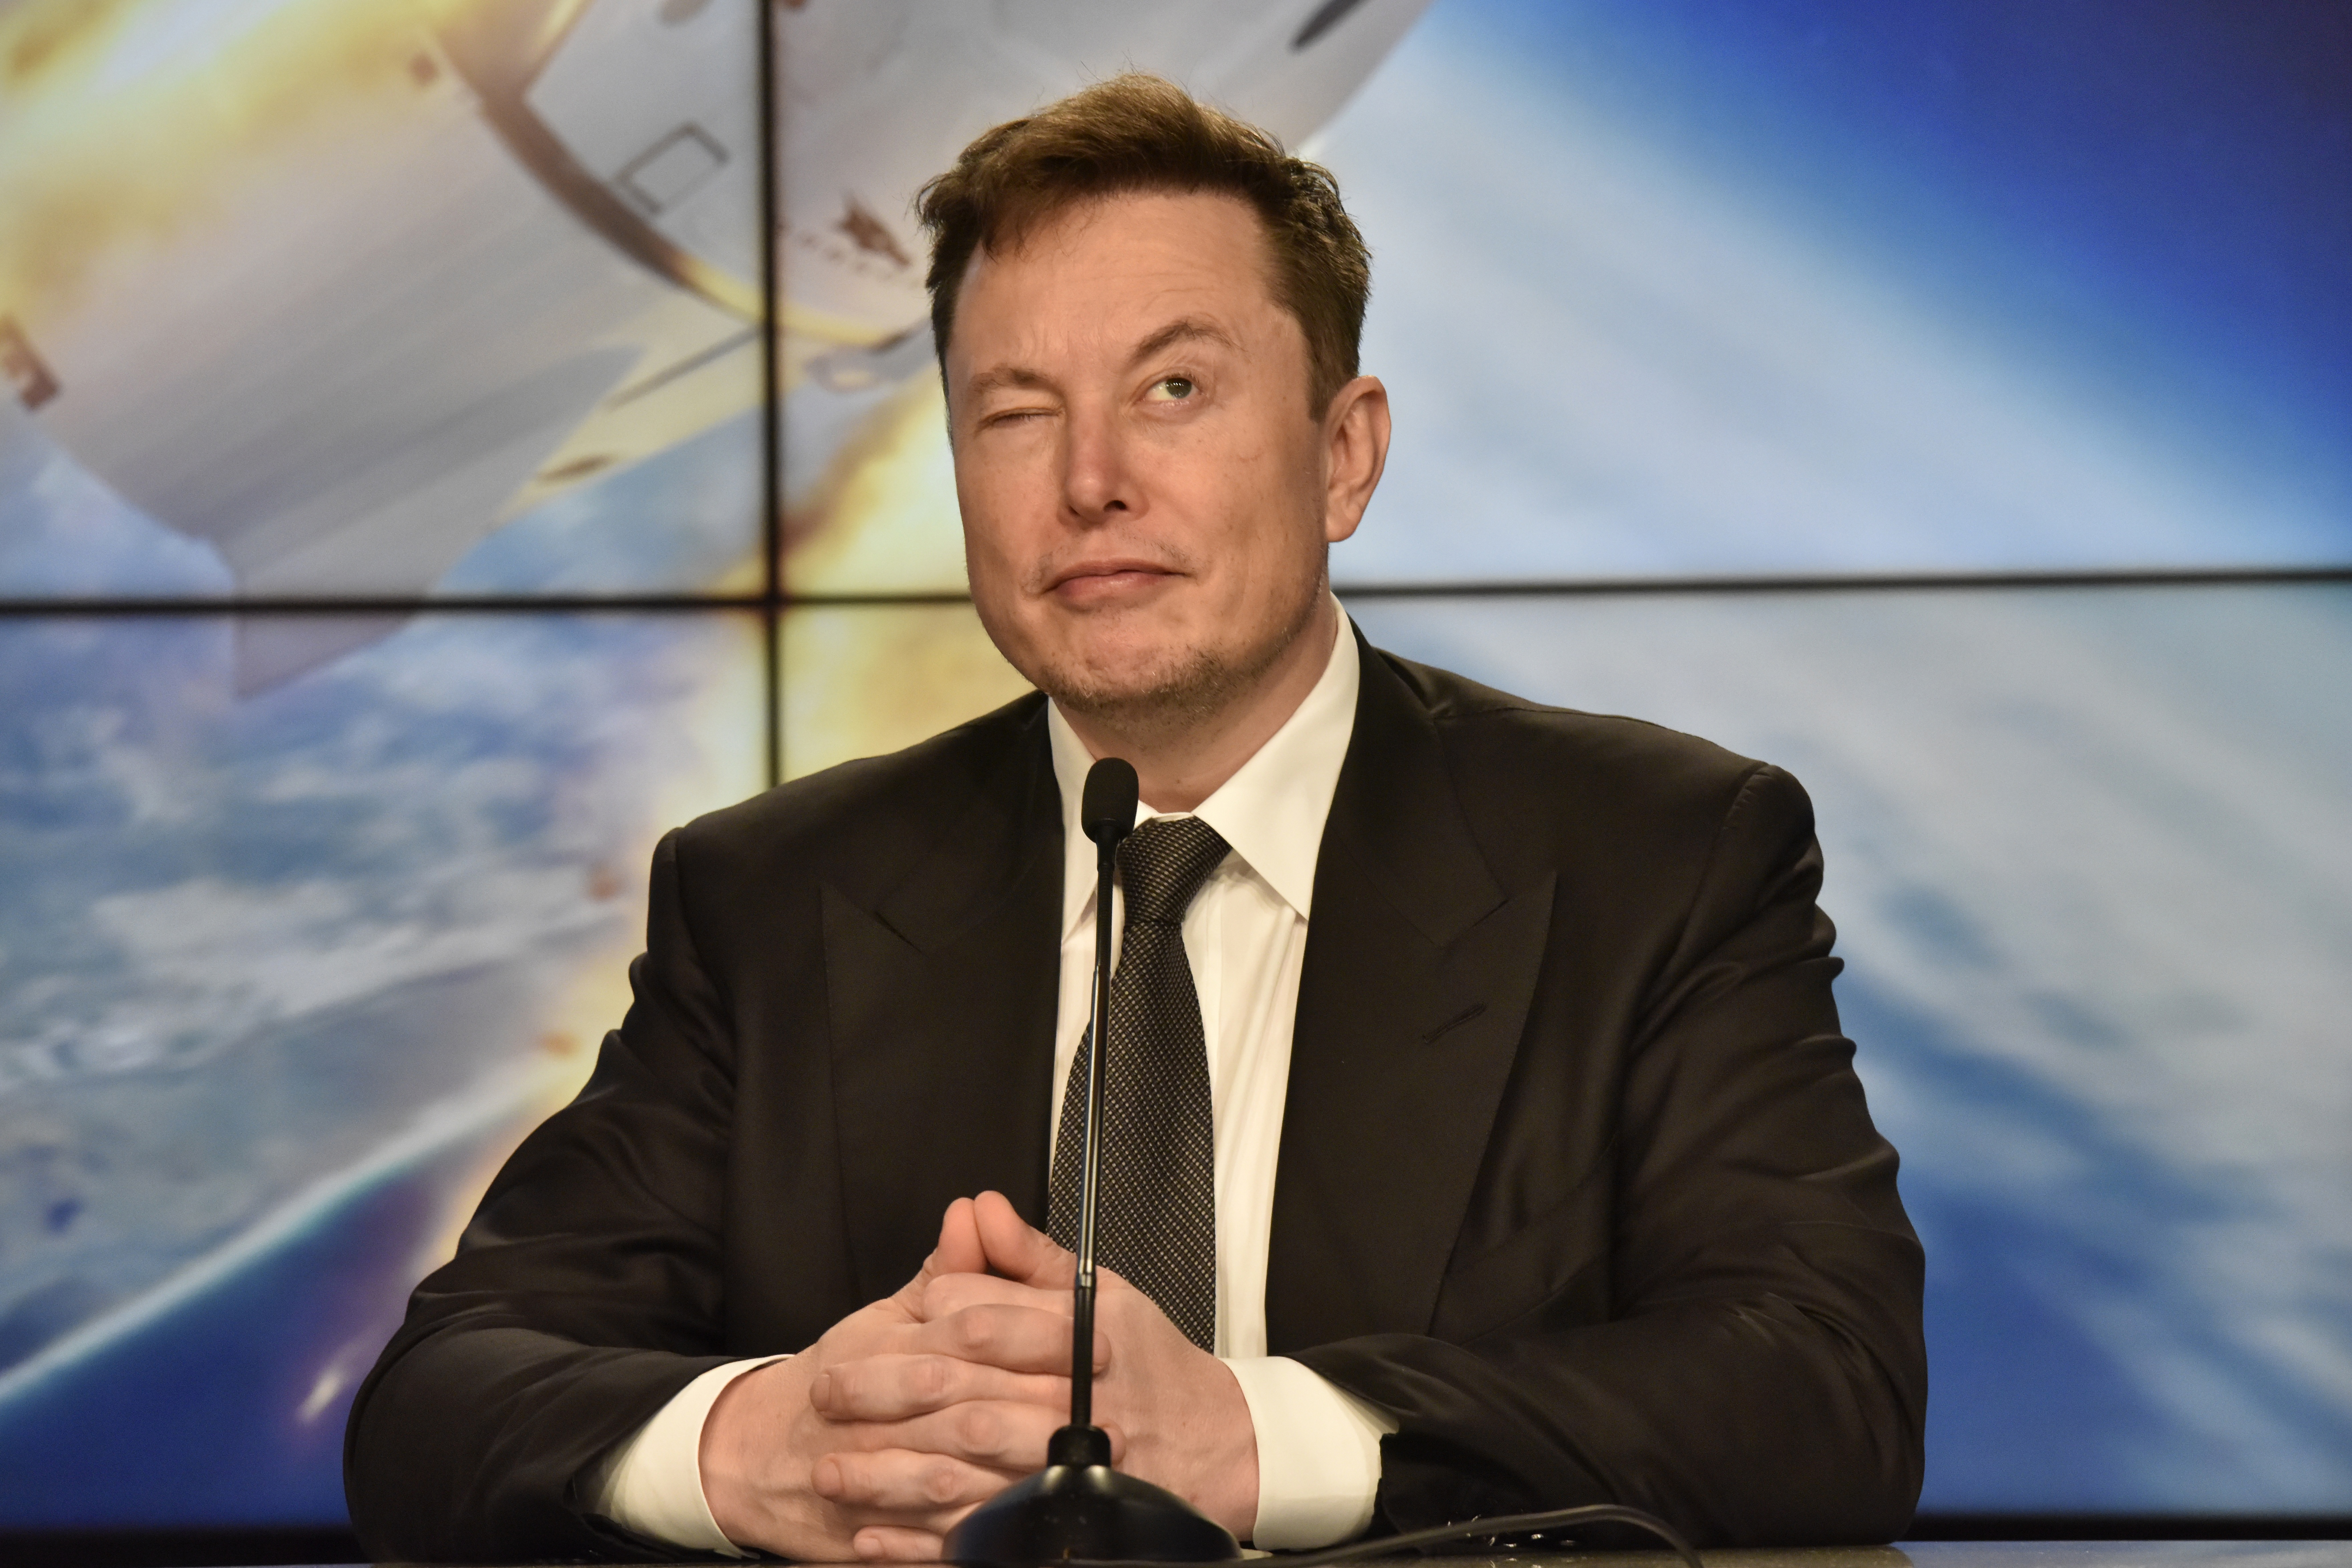 SpaceX founder and chief engineer Elon Musk reacts at a post-launch news conference to discuss the  SpaceX Crew Dragon astronaut capsule in-flight abort test at the Kennedy Space Center in Cape Canaveral, Florida, U.S. January 19, 2020. REUTERS/Steve Nesius - HP1EG1J1DBR10